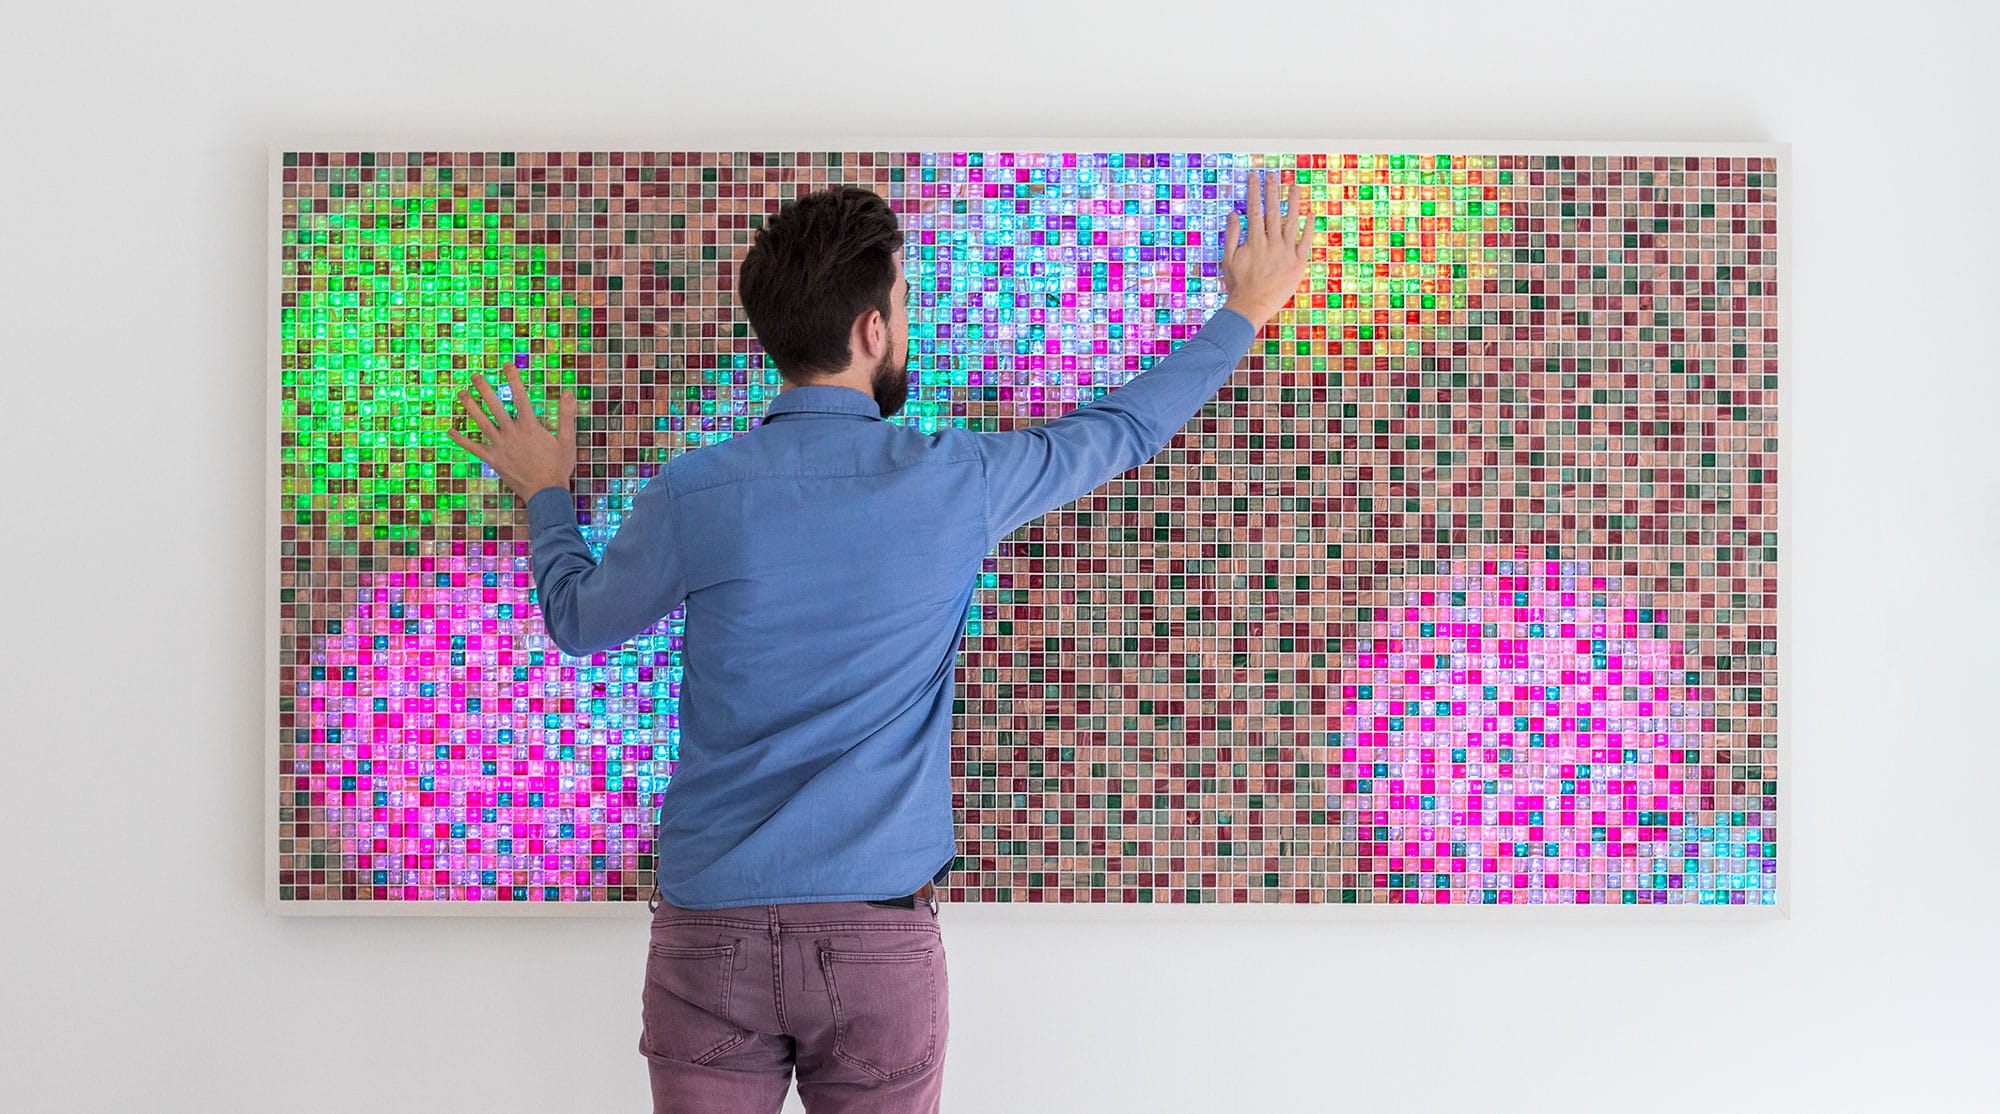 Playful interaction on multi-touch display